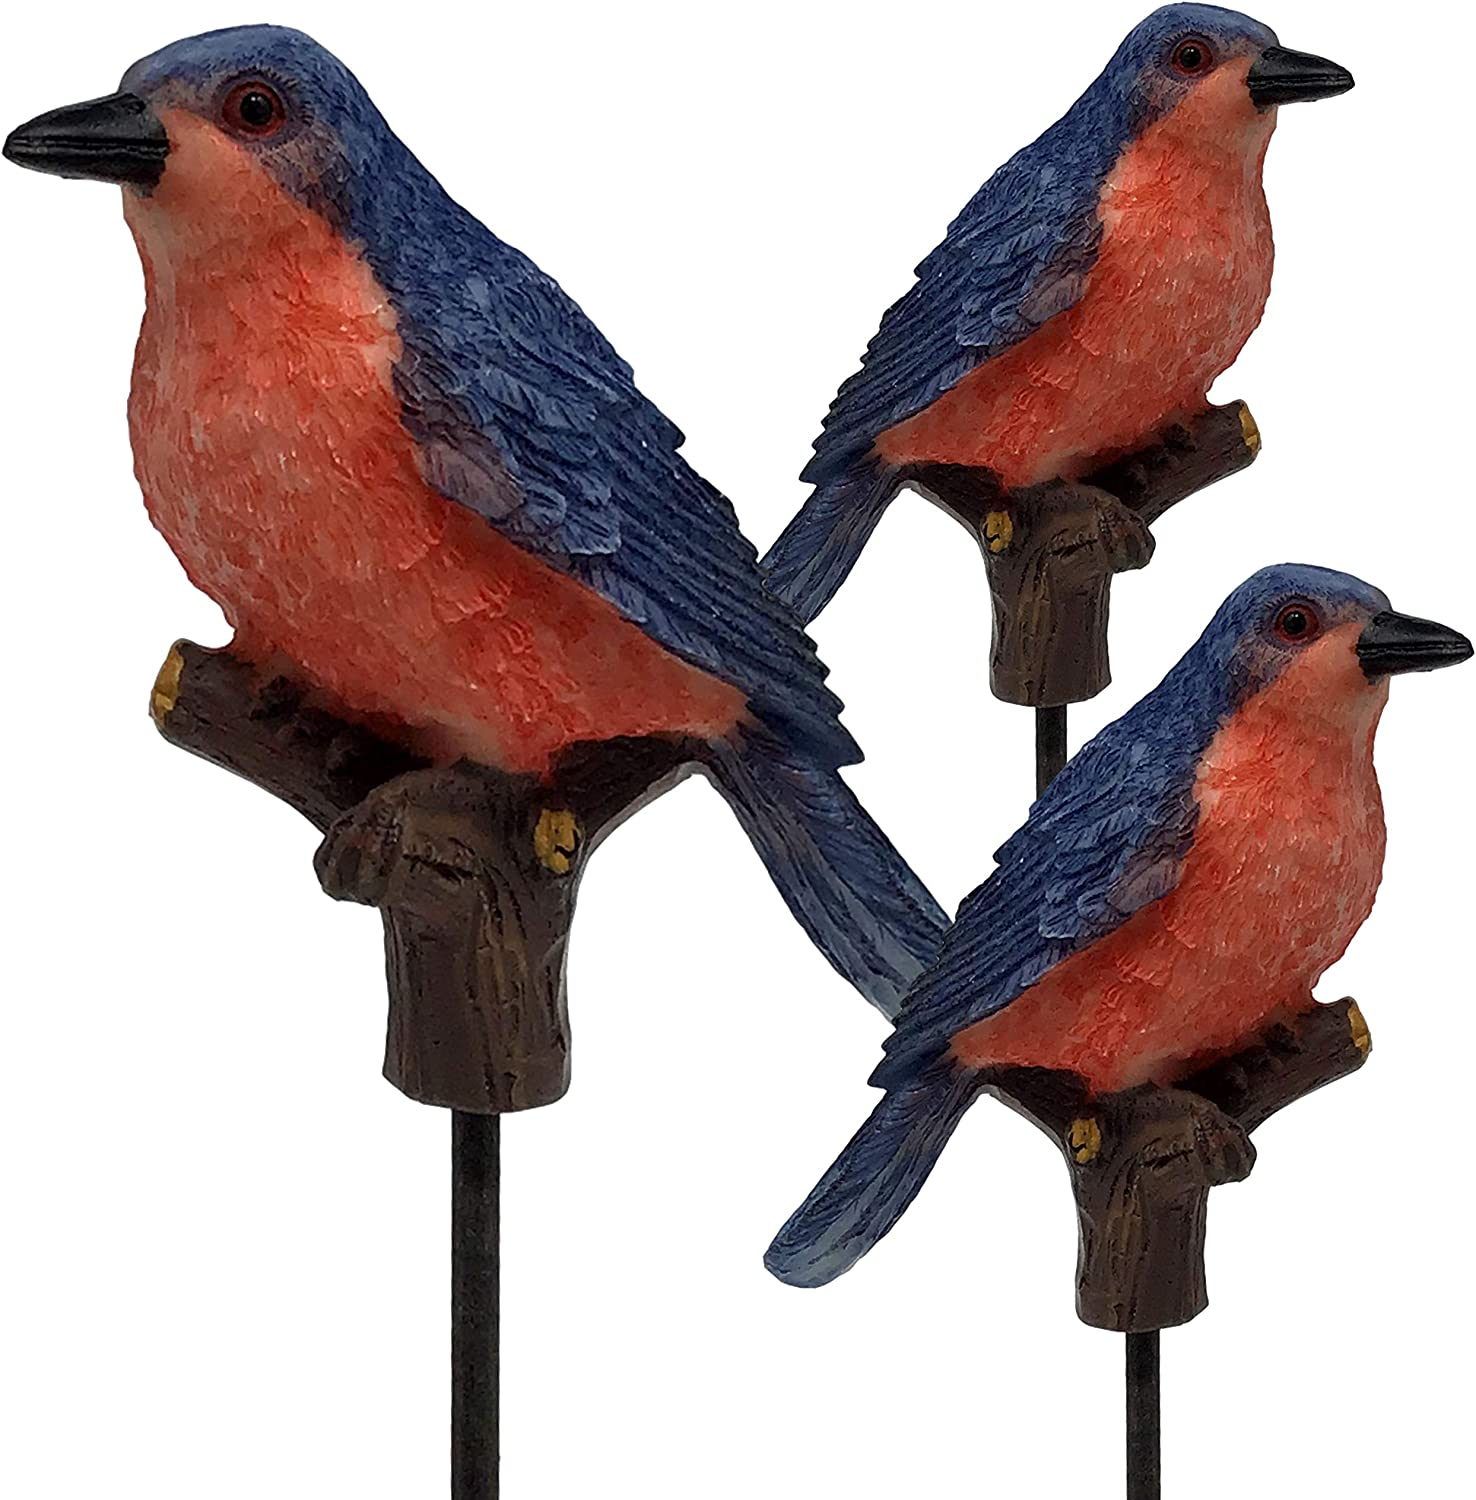 BANBERRY DESIGNS Blue Bird Garden Stakes - Set of 3 Bluebird Yard Décor Bird Statues - Welcoming Plant Stake with Hand Painted Birds Attached - Stands Approx. 10 Inches Tall